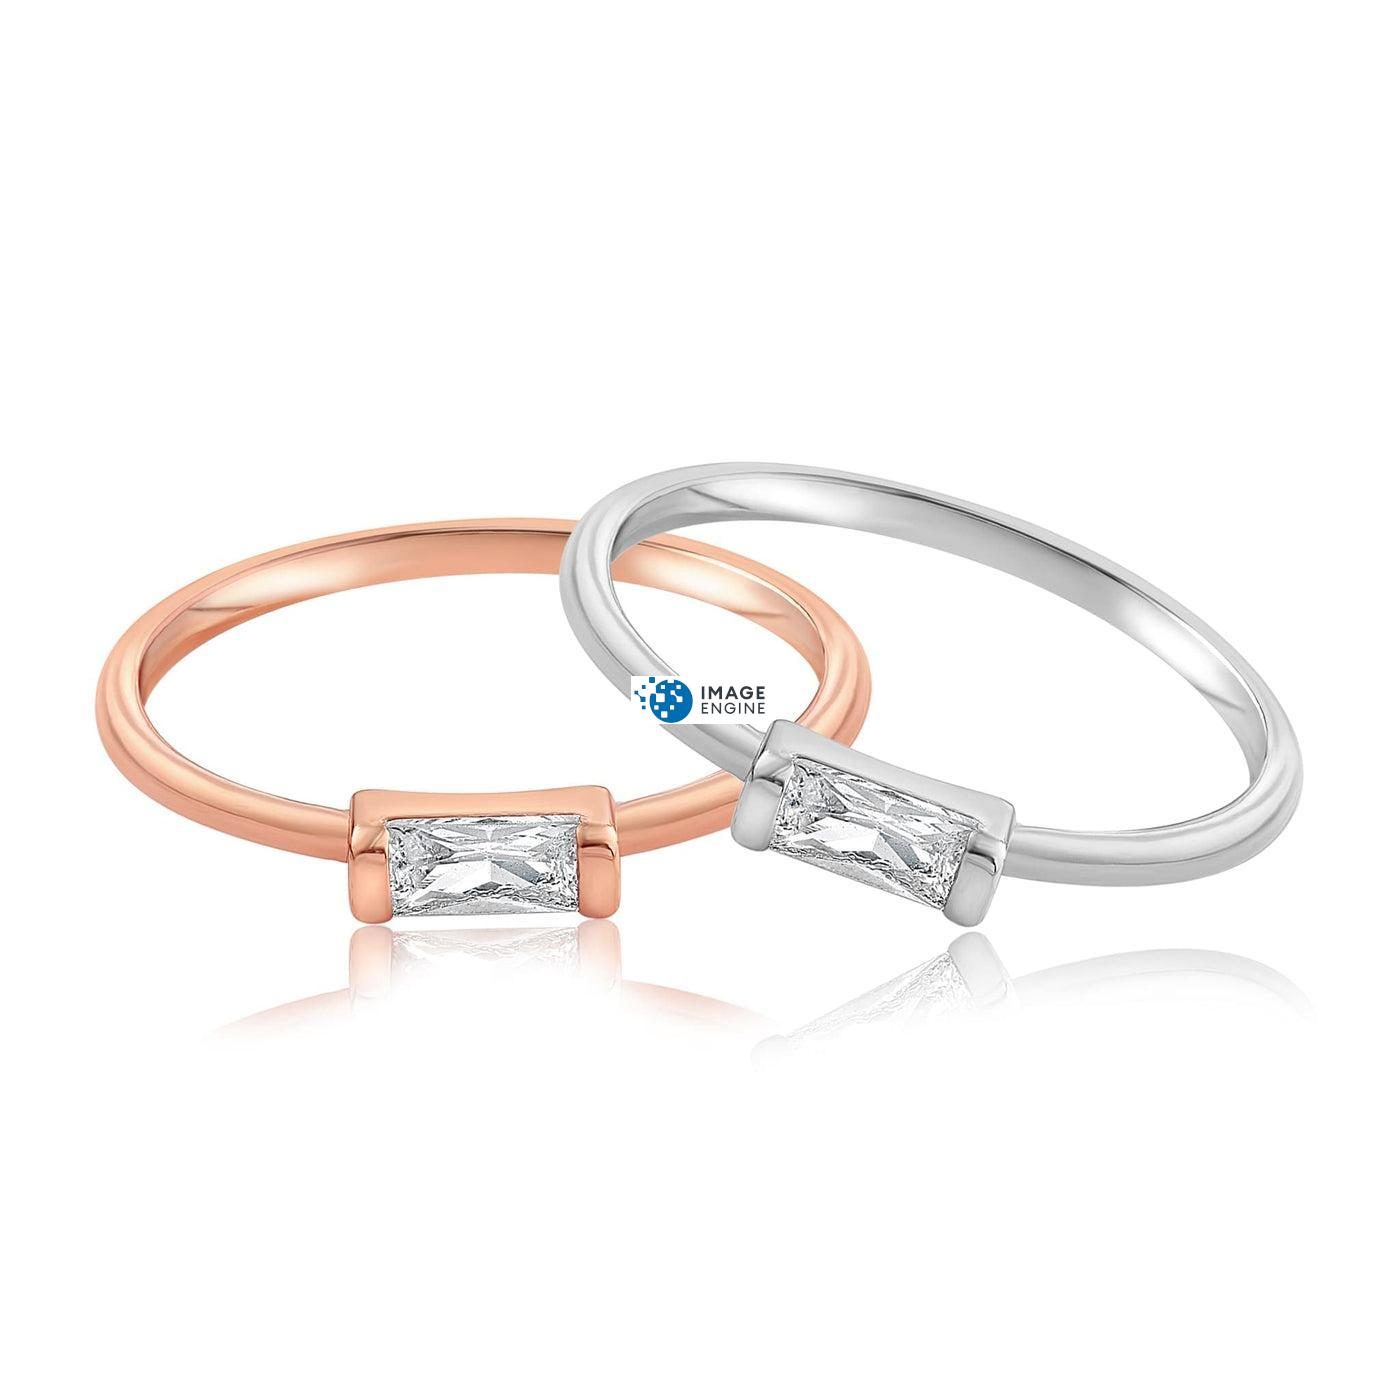 Moonie Glass Geometric Ring - Front View Side by Side - 18K Rose Gold Vermeil and 925 Sterling Silver